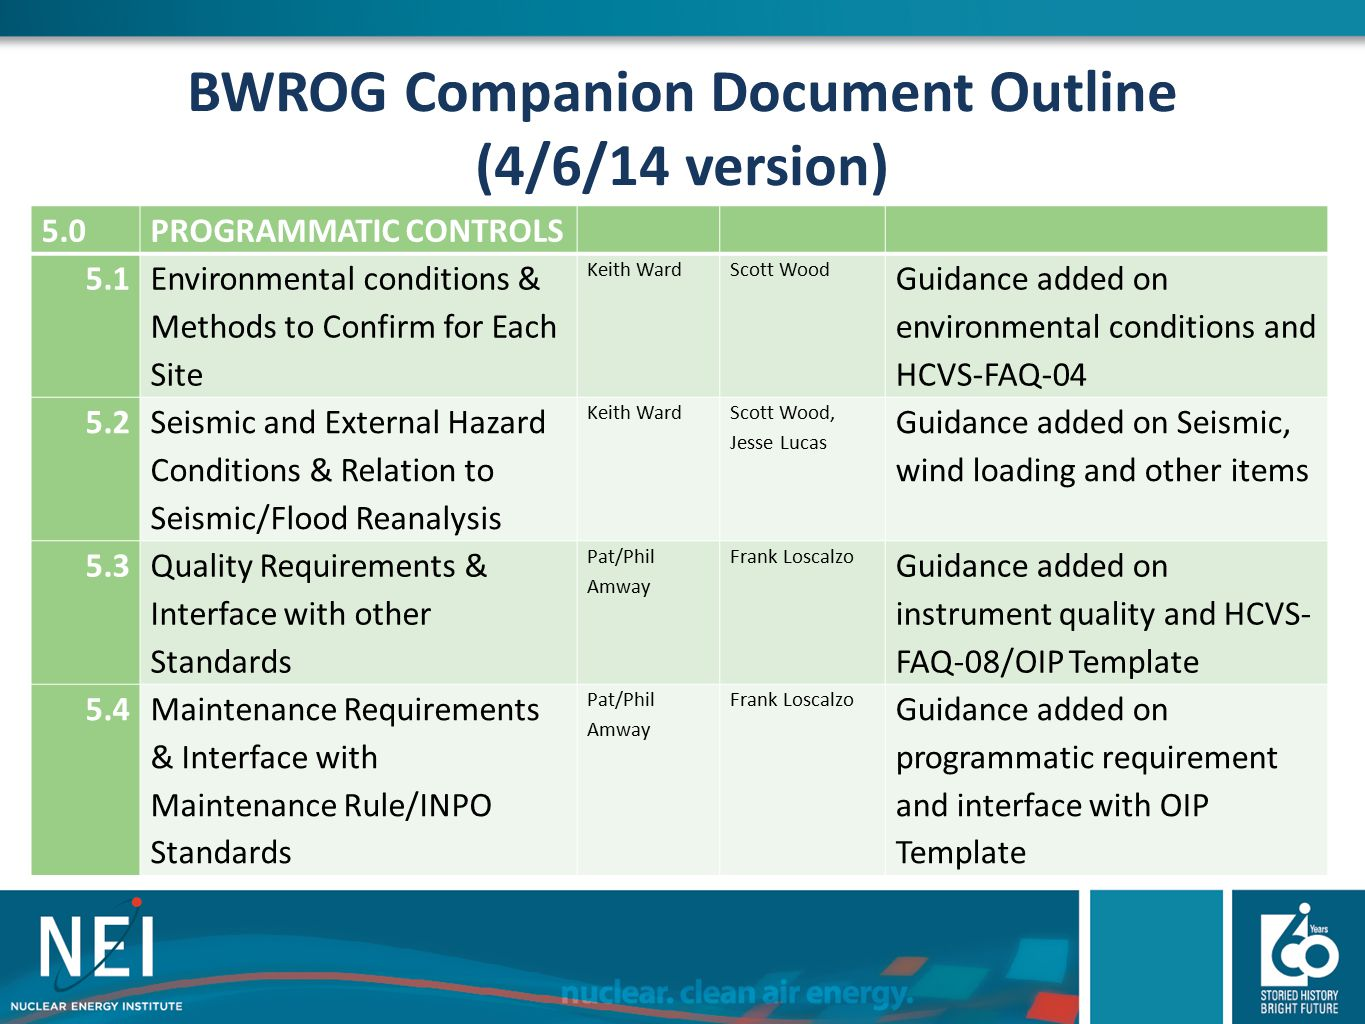 BWROG Companion Document Outline (4/6/14 version) 5.0PROGRAMMATIC CONTROLS 5.1 Environmental conditions & Methods to Confirm for Each Site Keith WardS